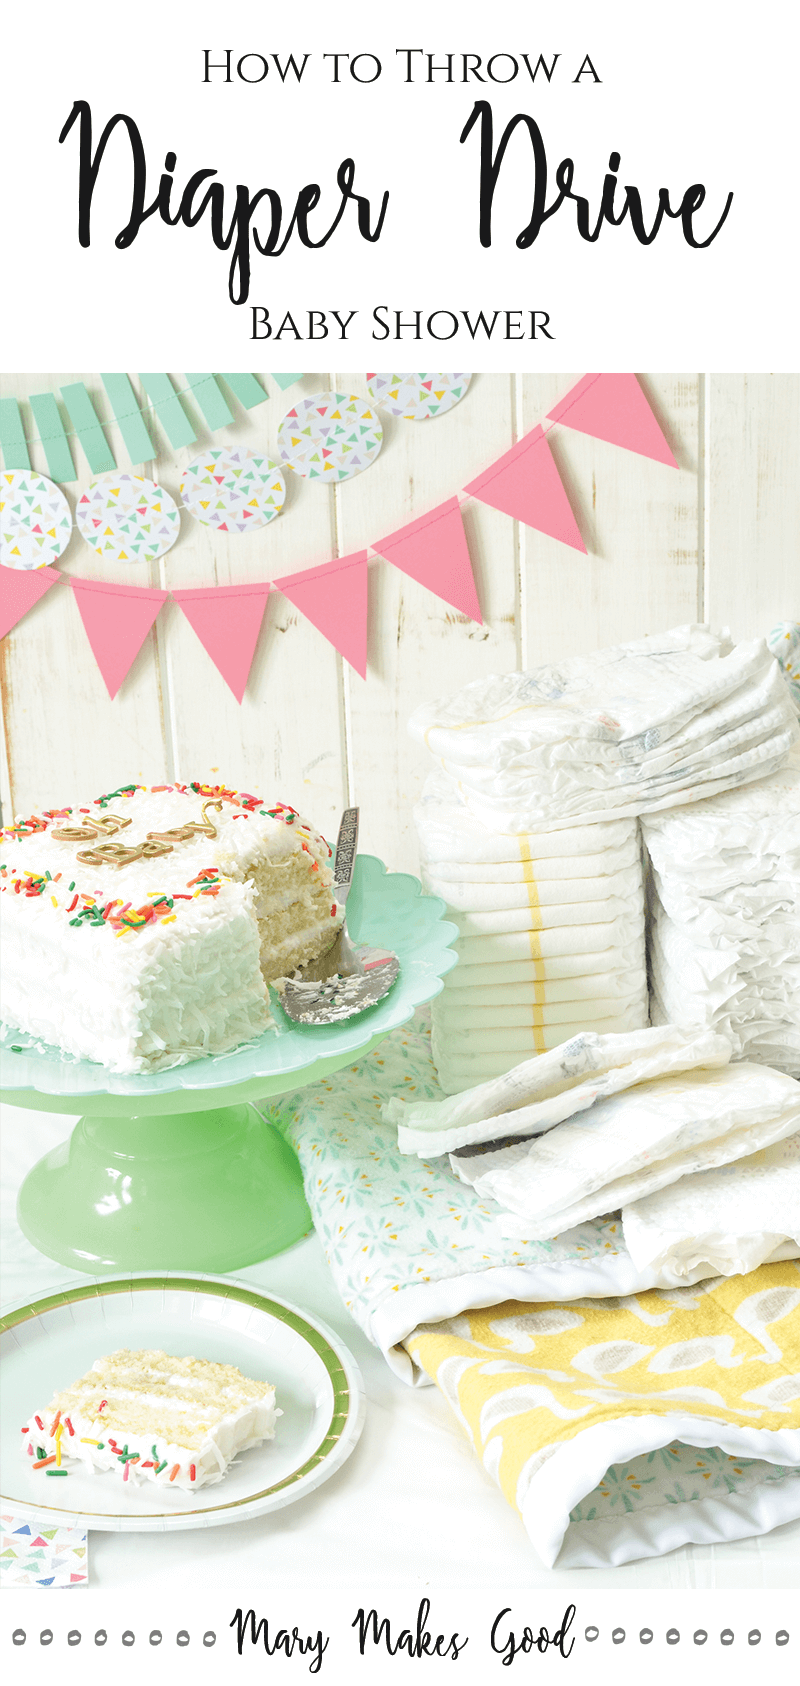 How to Throw a Diaper Drive Baby Shower - Party Ideas